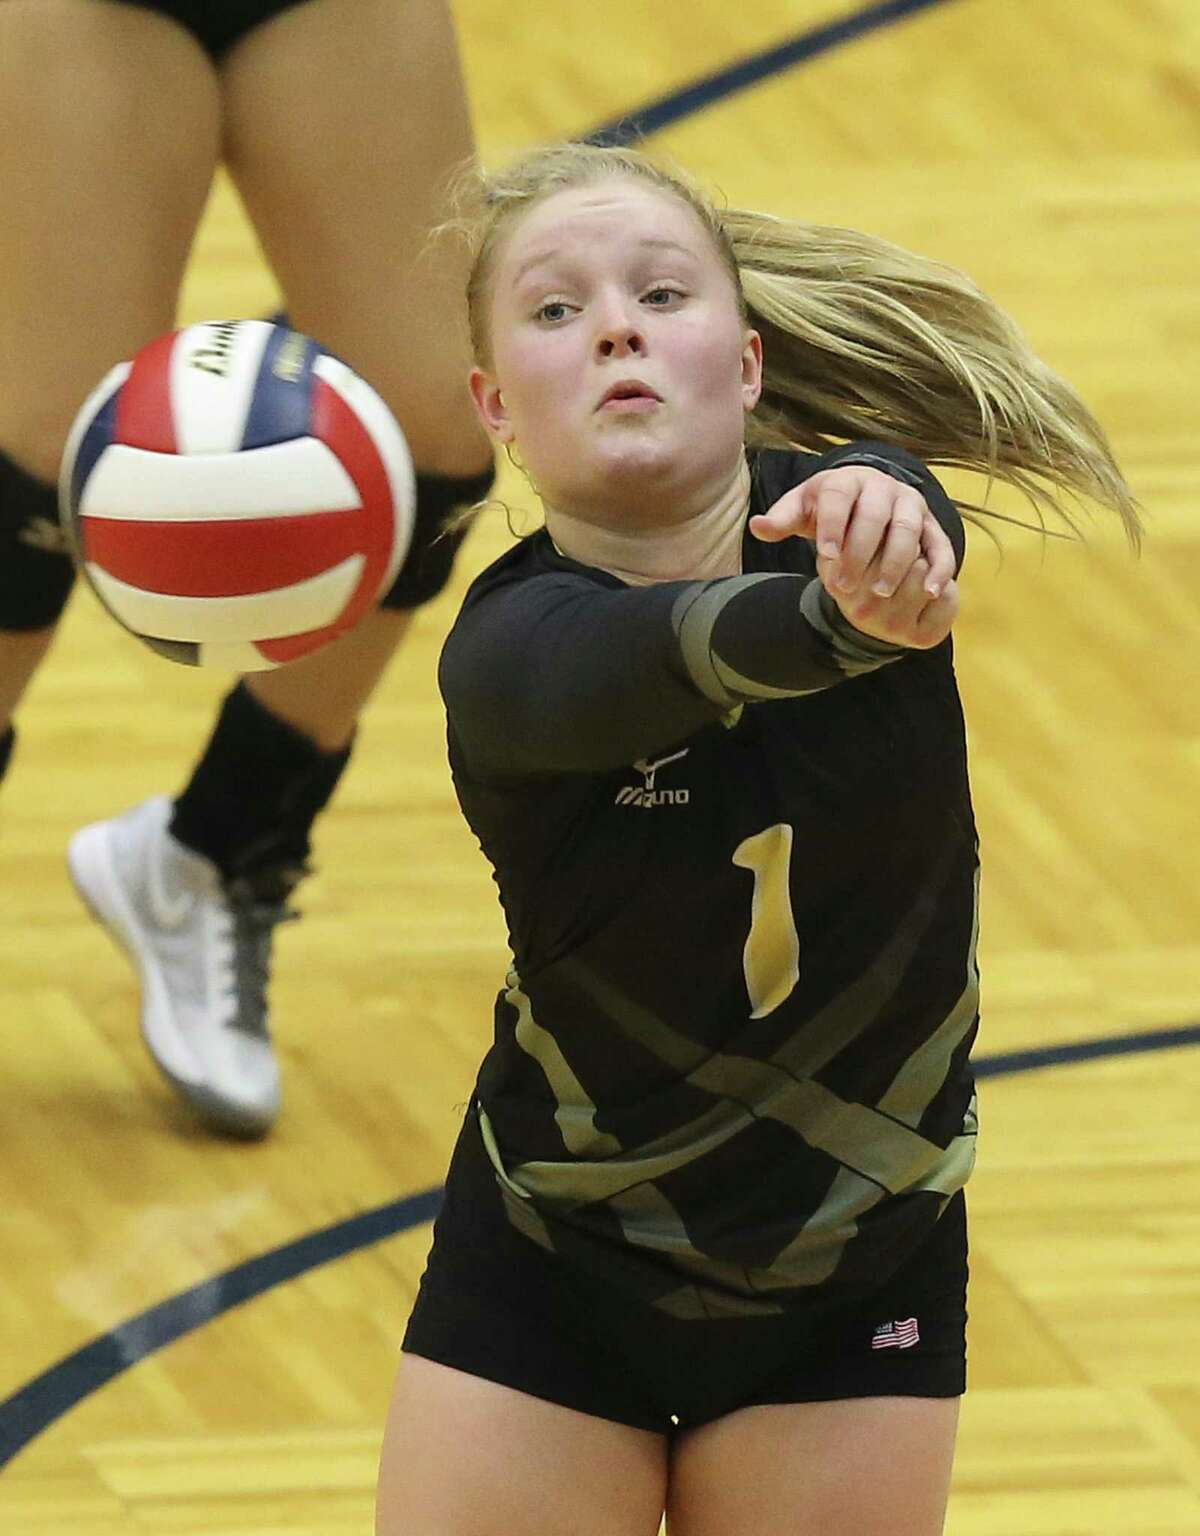 Brennan Libero Makenna Hanssen snares a shot as Clark plays Brennan in volleyball at Taylor Field House on August 30, 2016